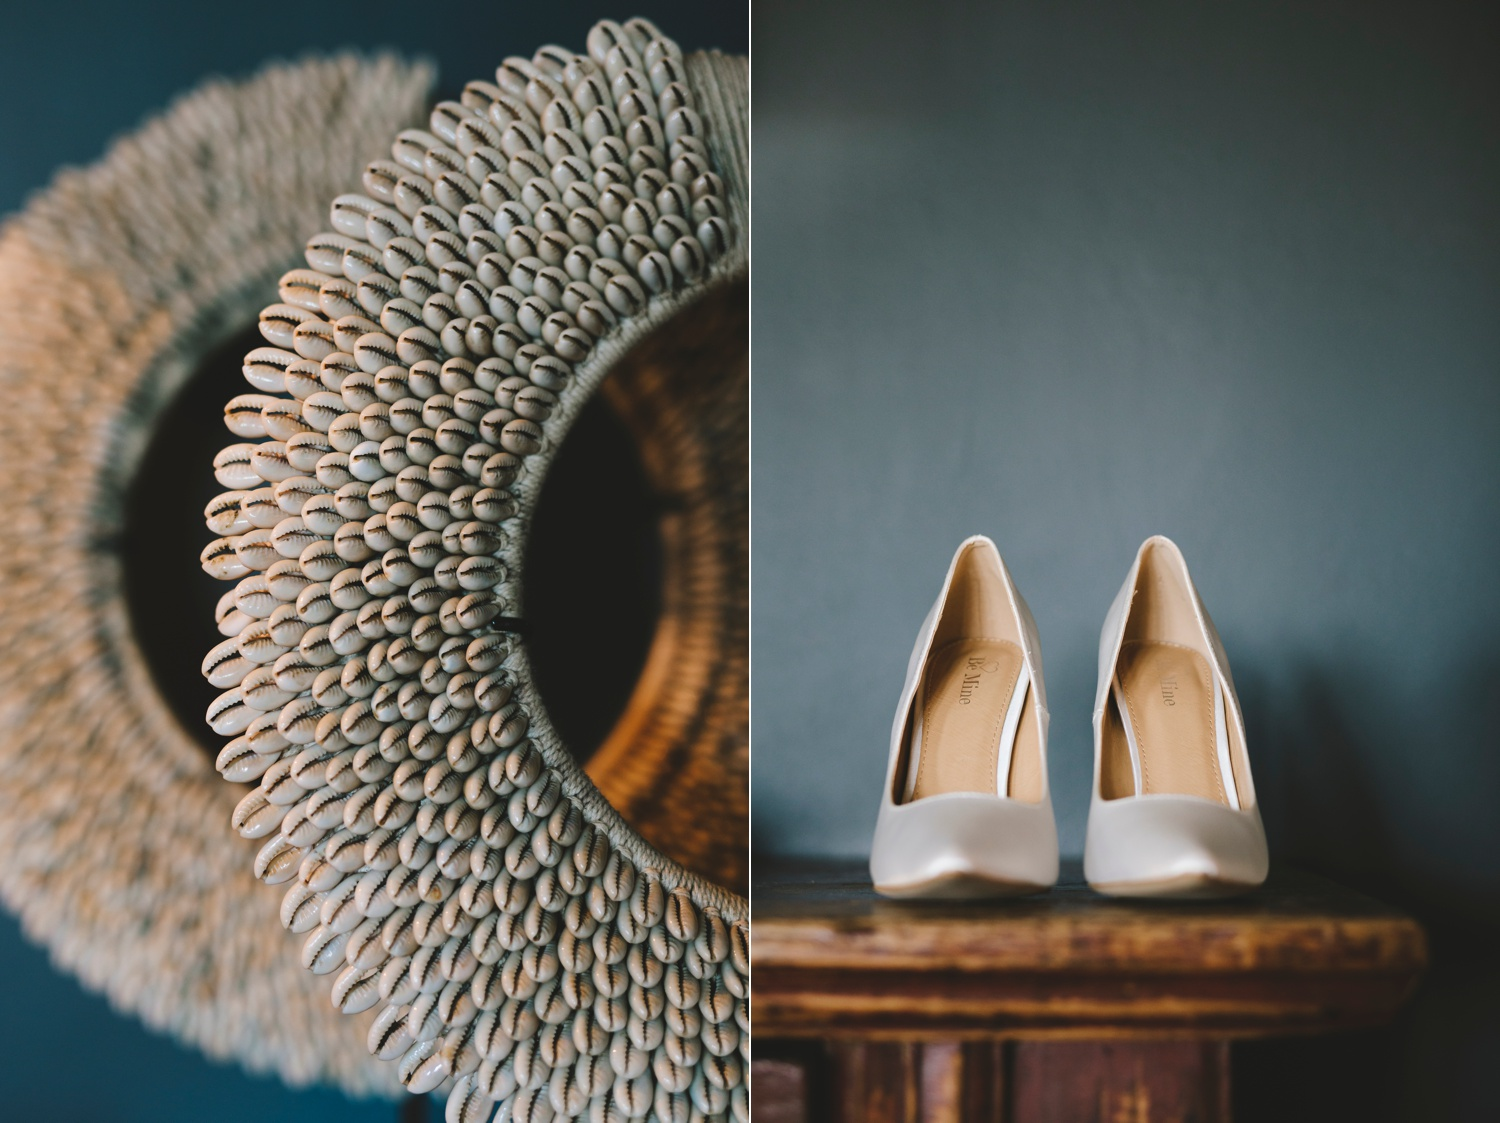 charlie_ray_photography_runaway_romance_elopement_emily_moon_plett_simple_boho_wedding_south_africa_bohemium_0011.jpg